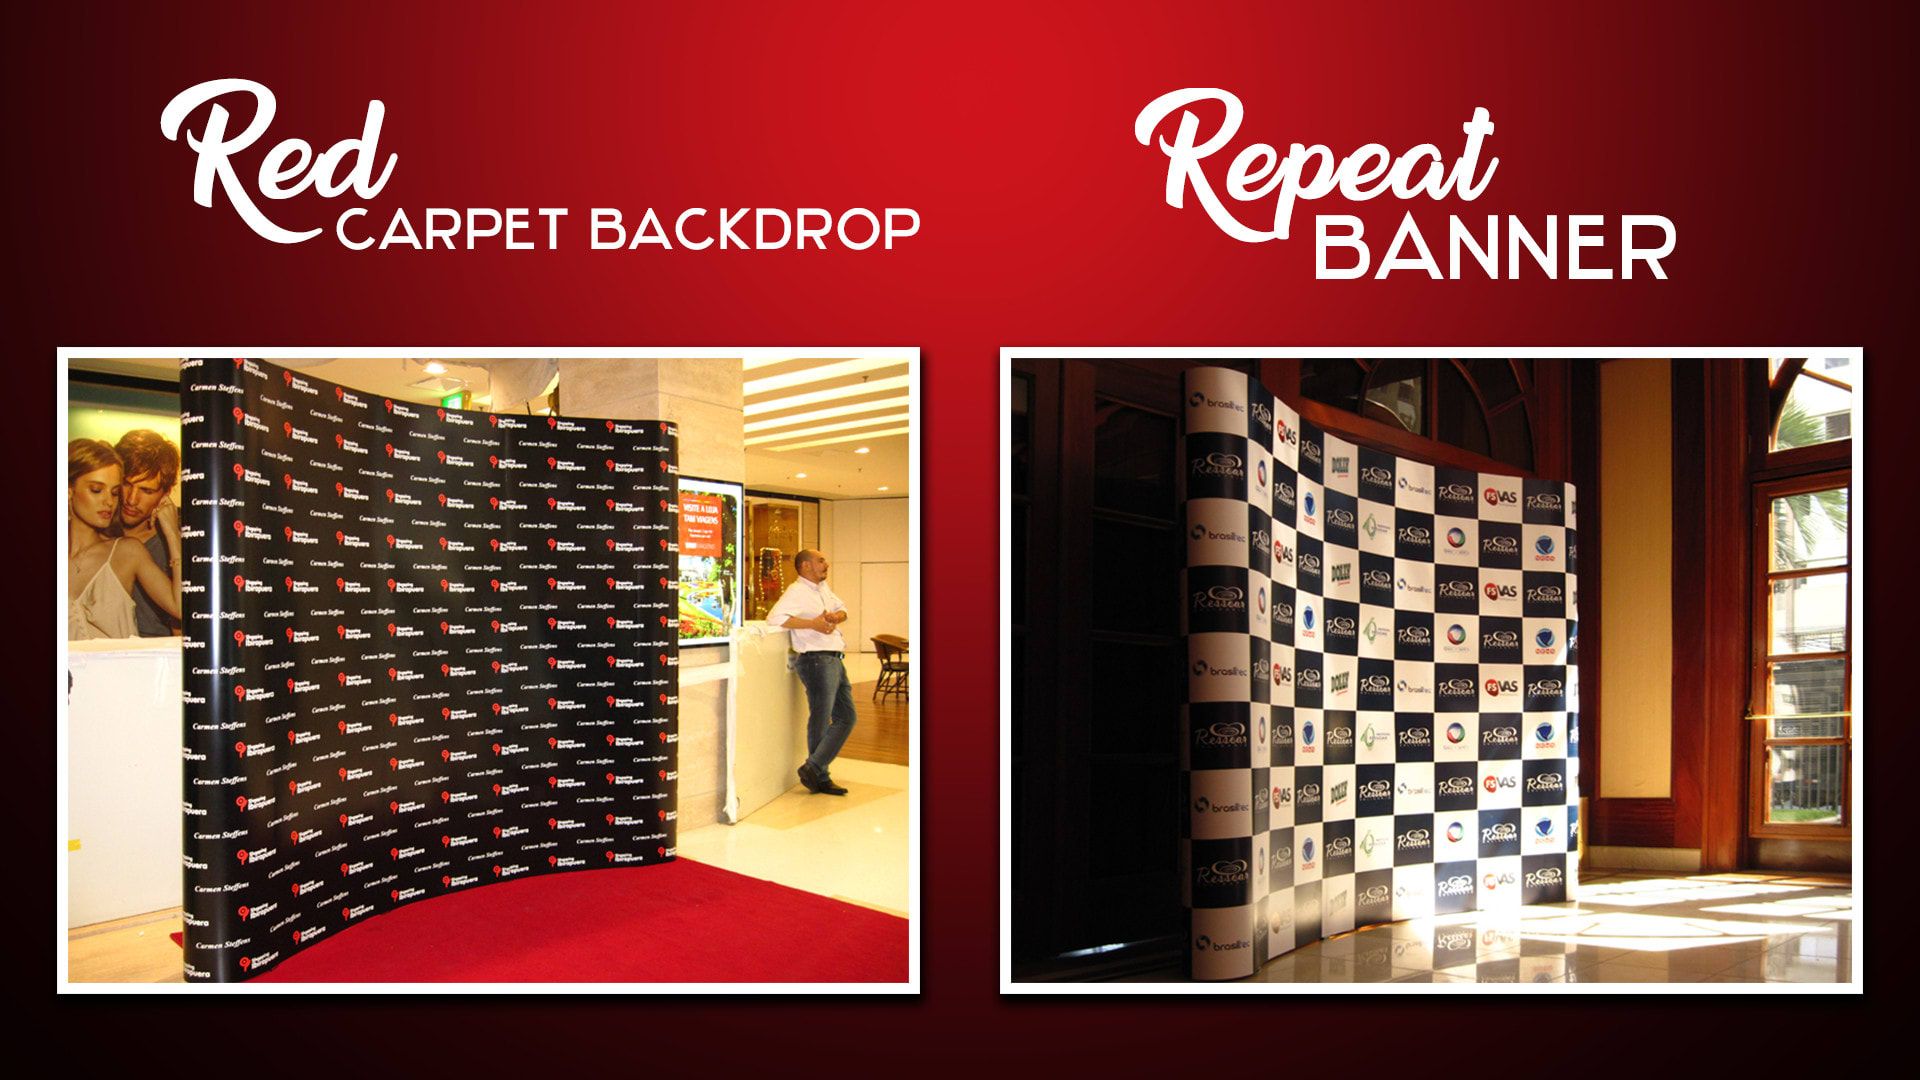 Do Printable Red Carpet Backdrop And Repeat Banner Design By Shammyriya